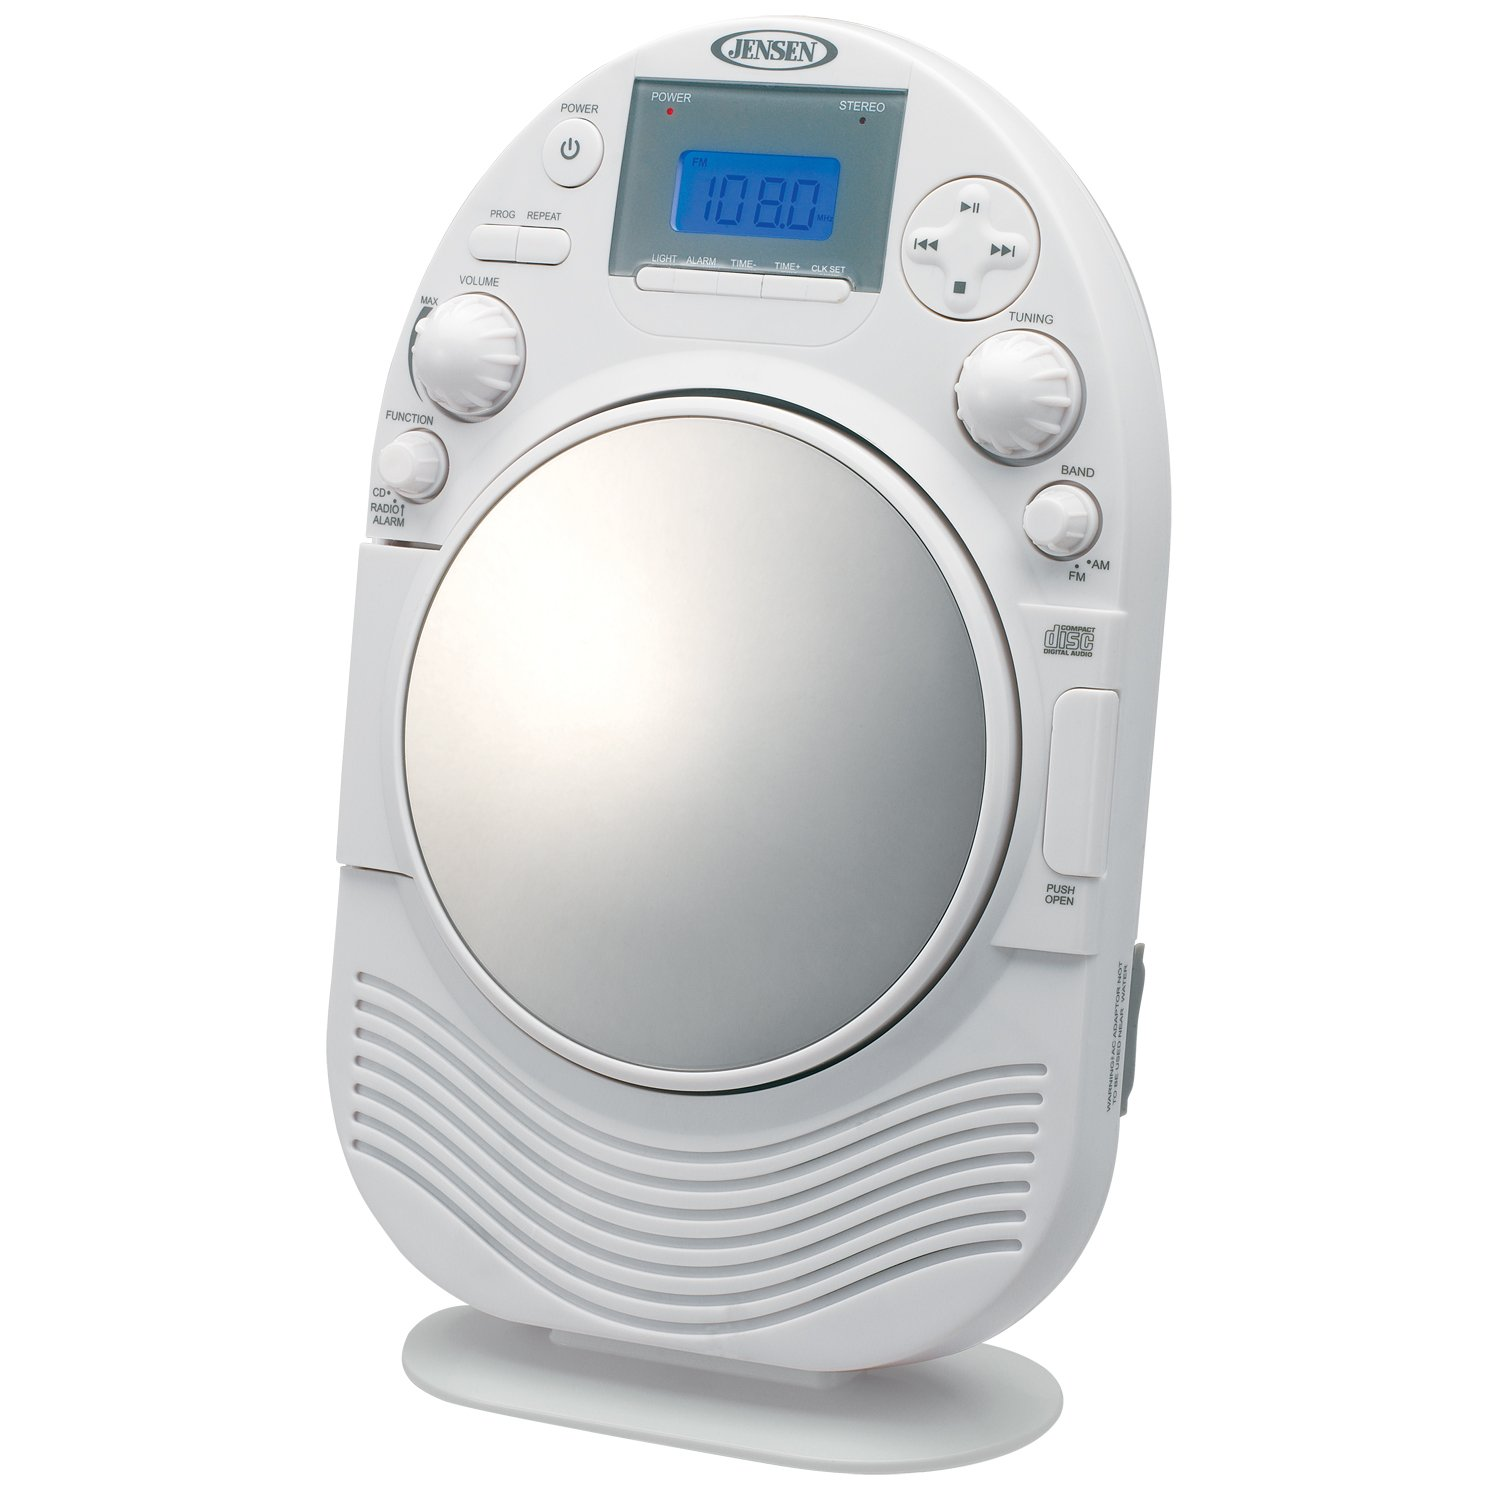 High Quality Amazon.com: Jensen JCR525 AM/FM Stereo Shower Radio With CD Slot: Home  Audio U0026 Theater